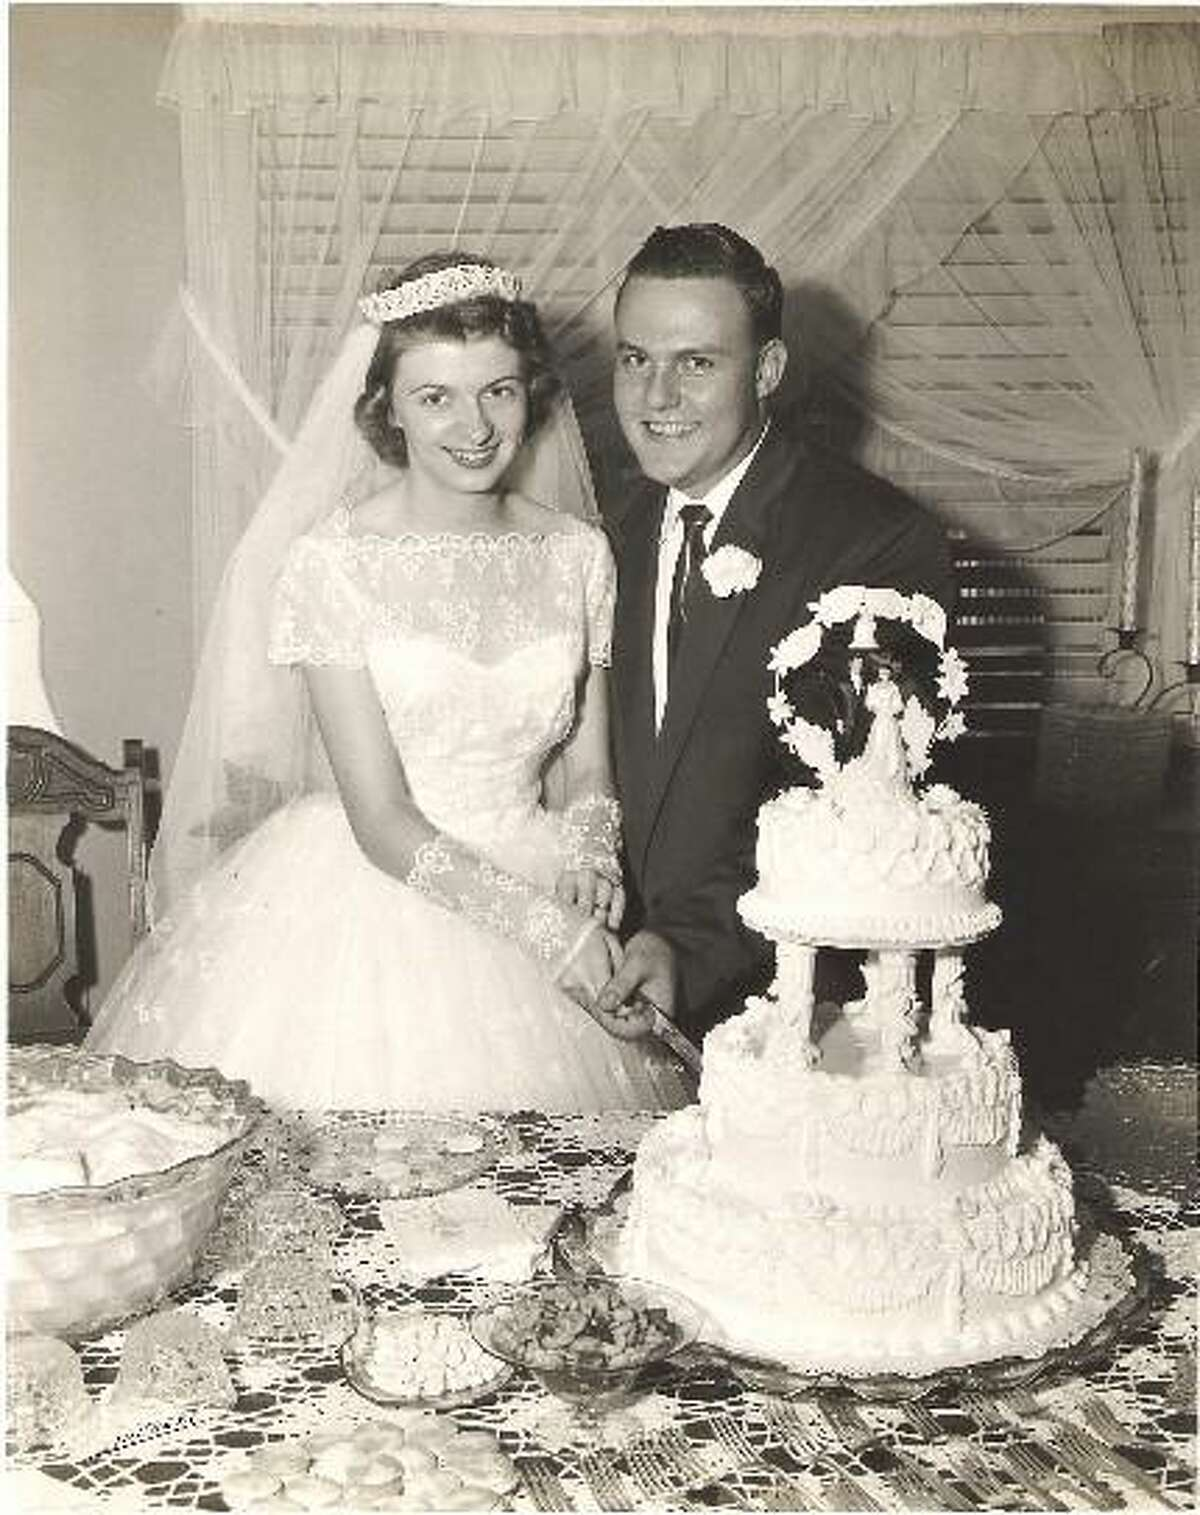 Bill and Martha McCart of Shelton, married in Cape Girardeau, Missouri, celebrated their 65th Wedding Anniversary on August 25th.